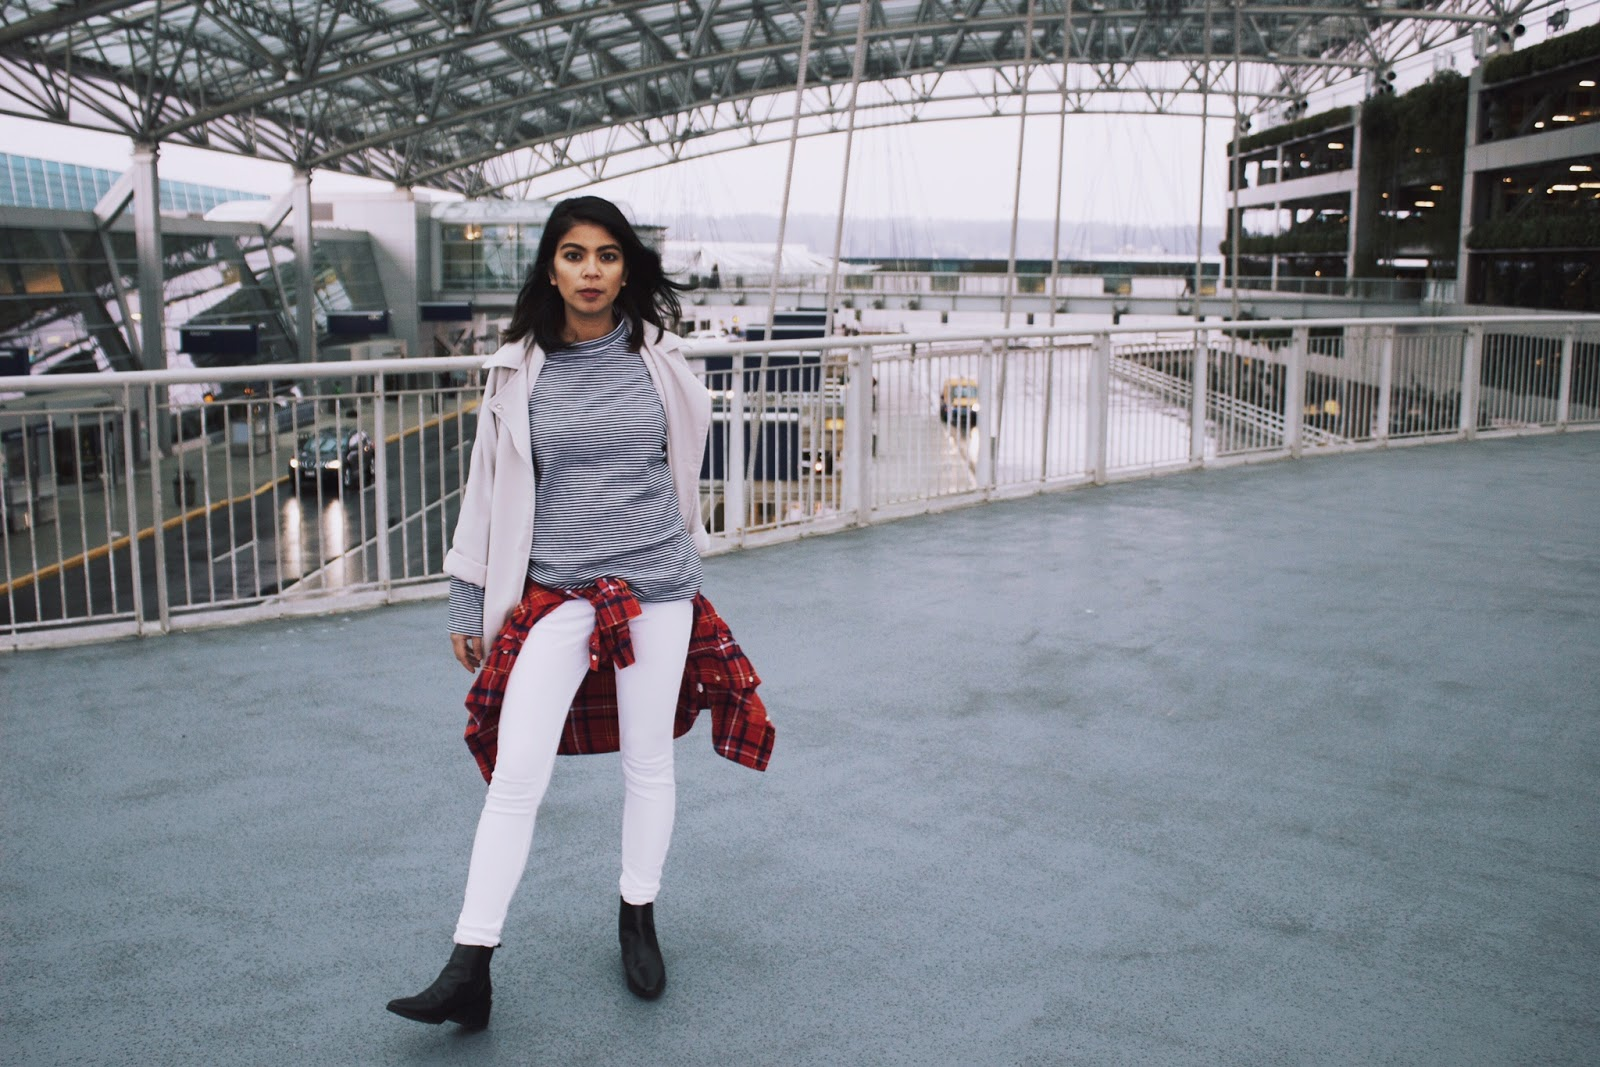 portland fashion blogger, pdx style blogger, oregon blogger, wiwt, fblogger, black and white striped long sleeve shirt, black ankle boots, white jeans, long gray trench coat, plaid shirt, ootd, airport style